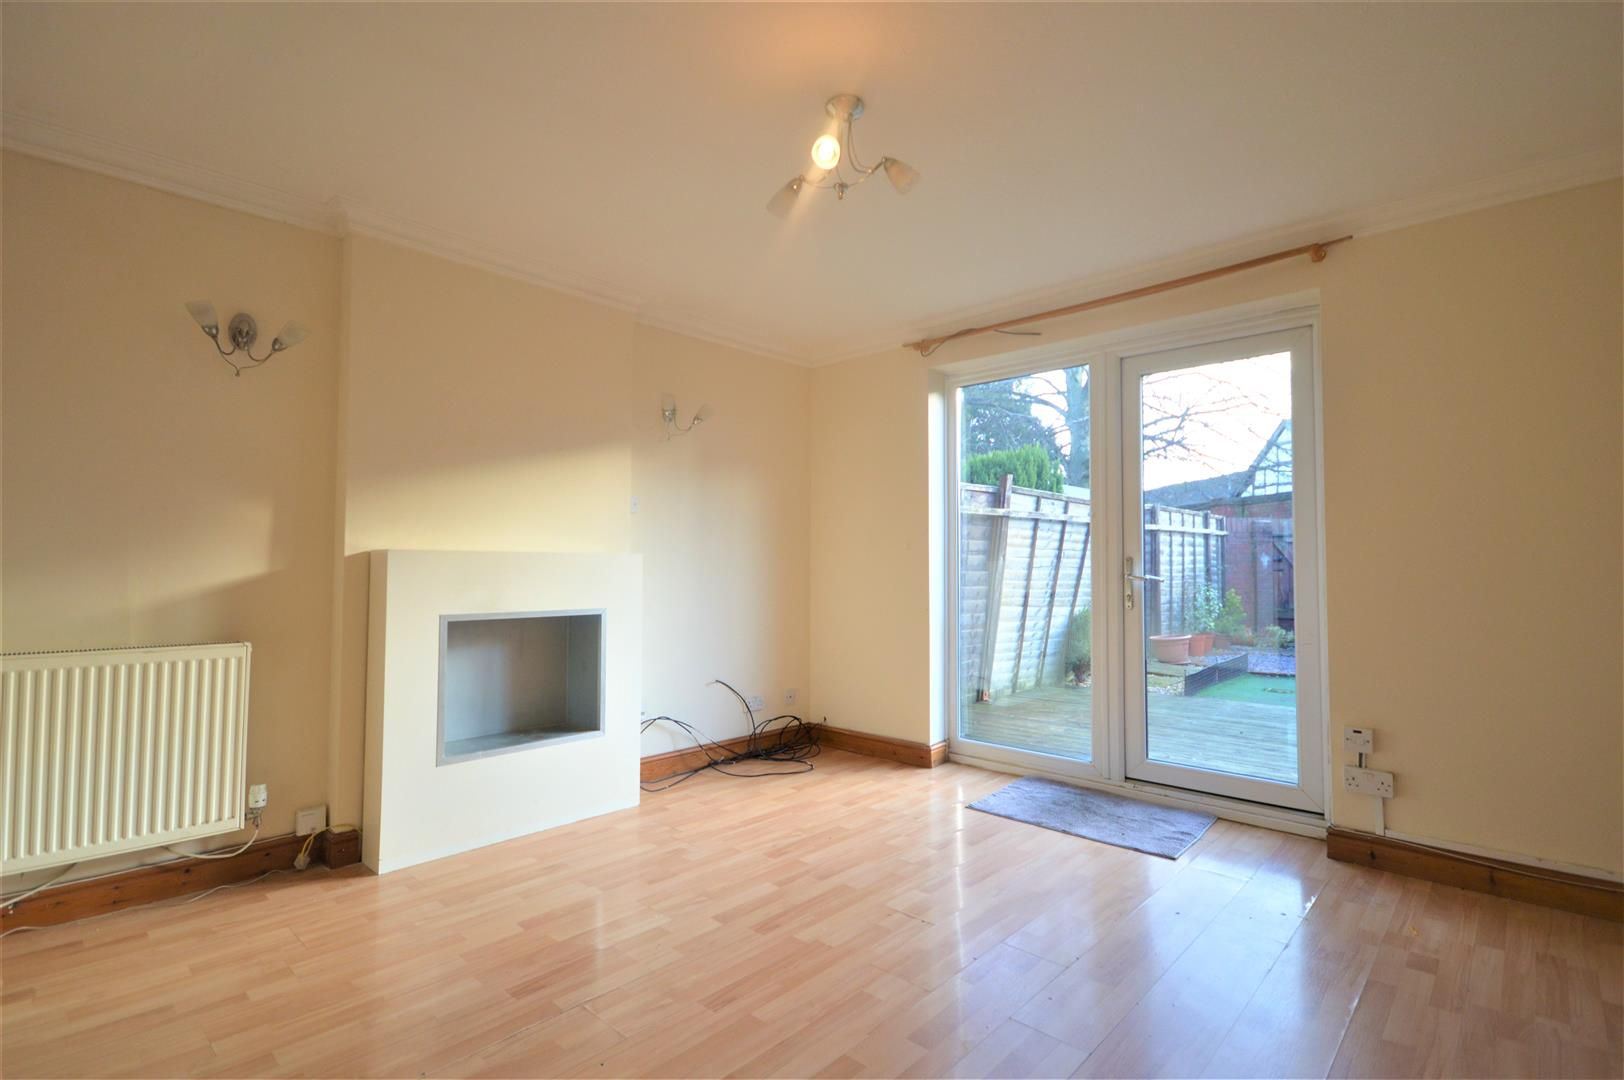 2 bed terraced for sale in Leominster  - Property Image 4